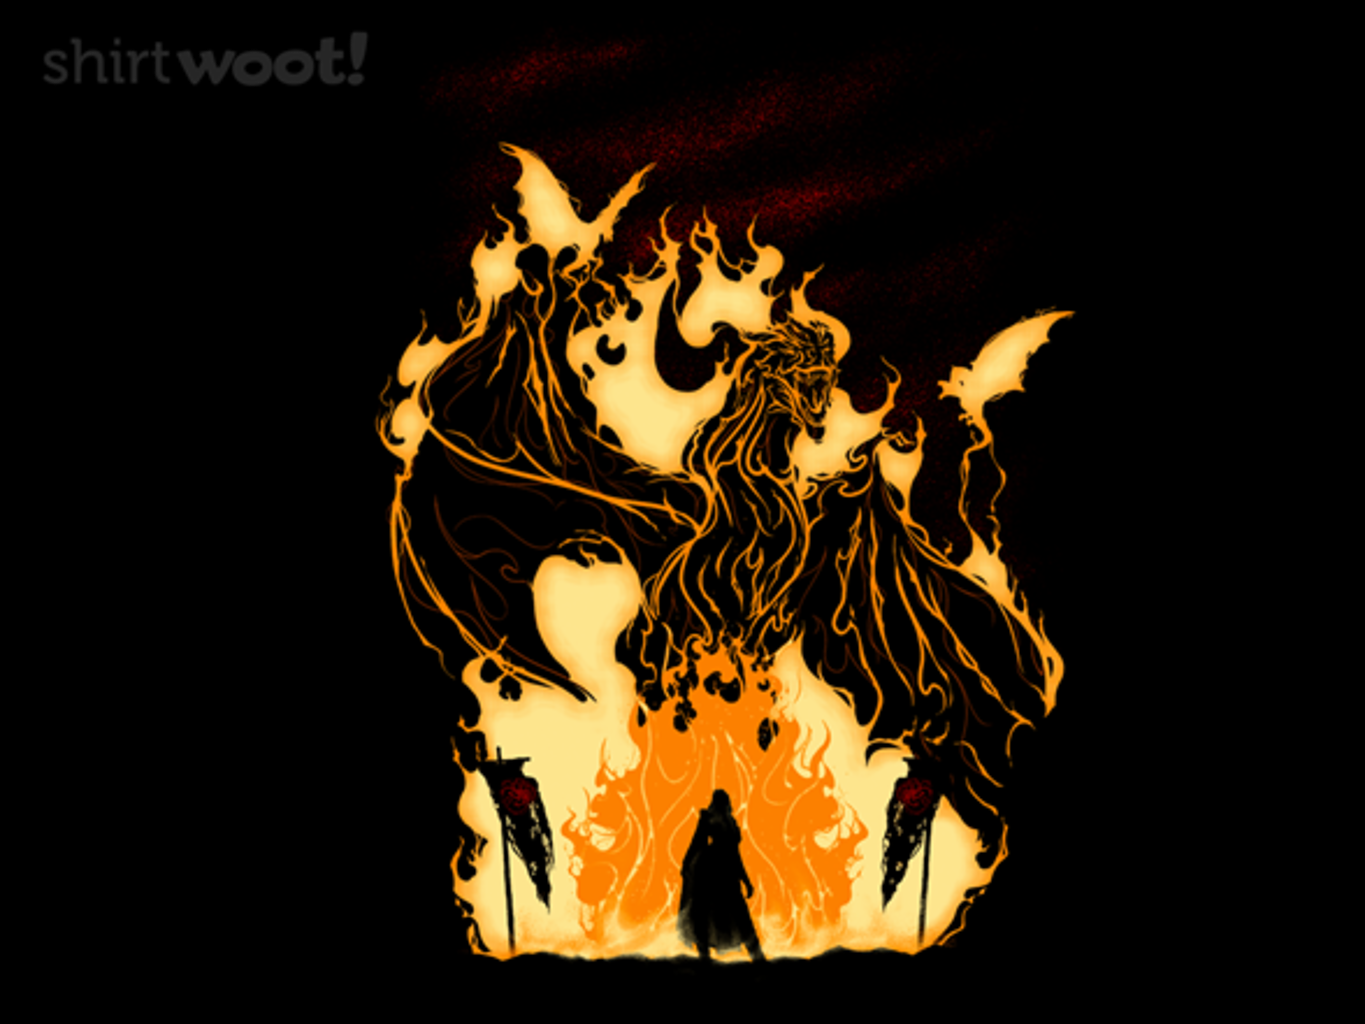 Woot!: Fire and Blood - $15.00 + Free shipping